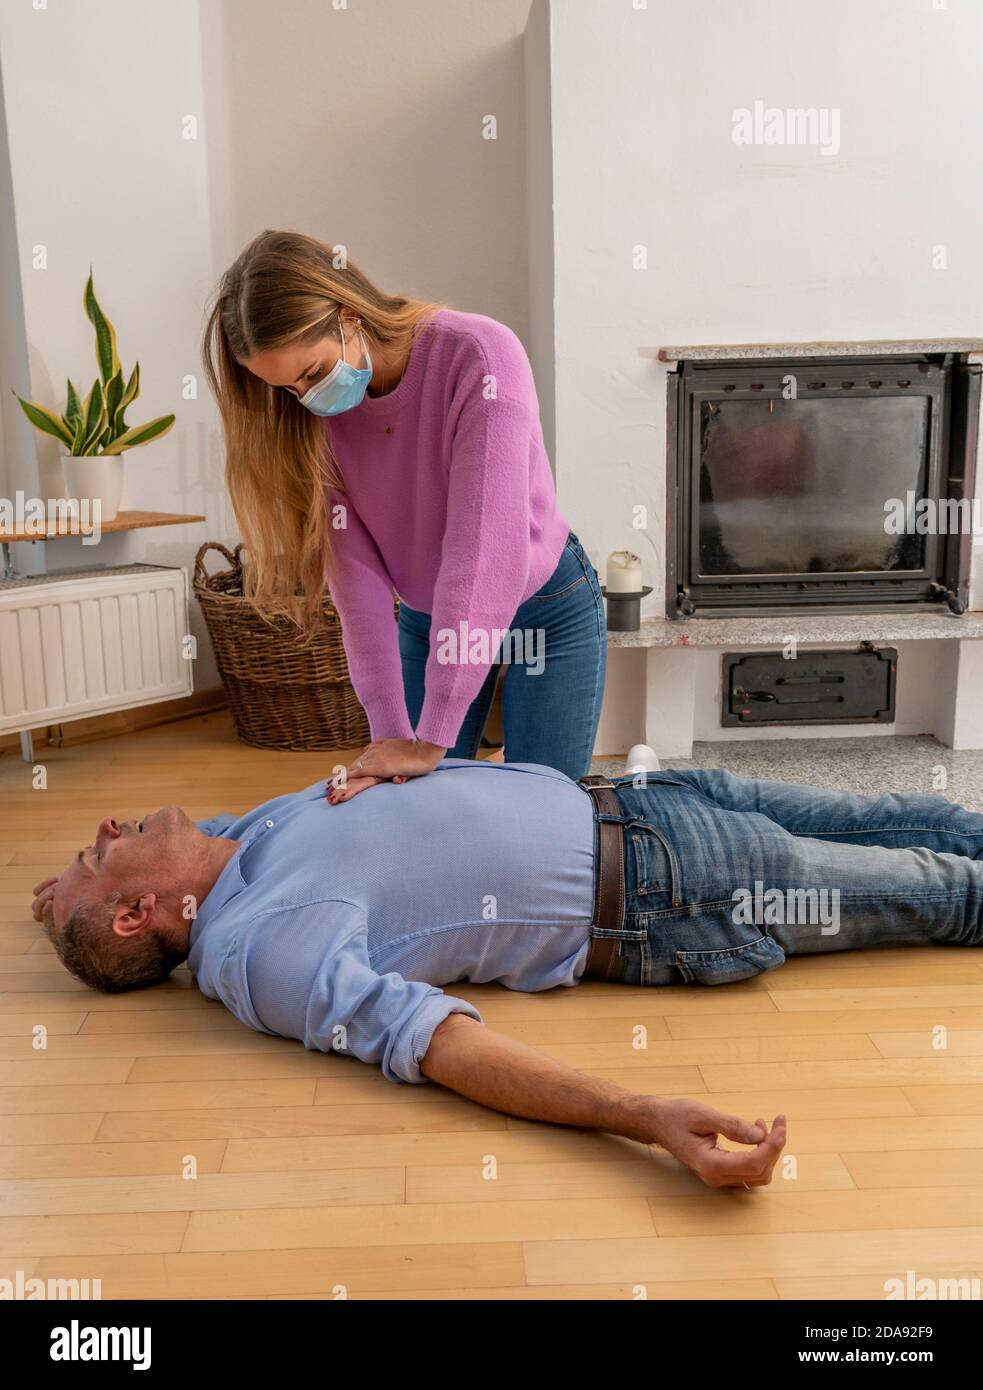 First aid measures under corona conditions, resuscitation, resuscitation, cardiac pressure massage with mouth-and-nose mask, for first aiders, symboli Stock Photo